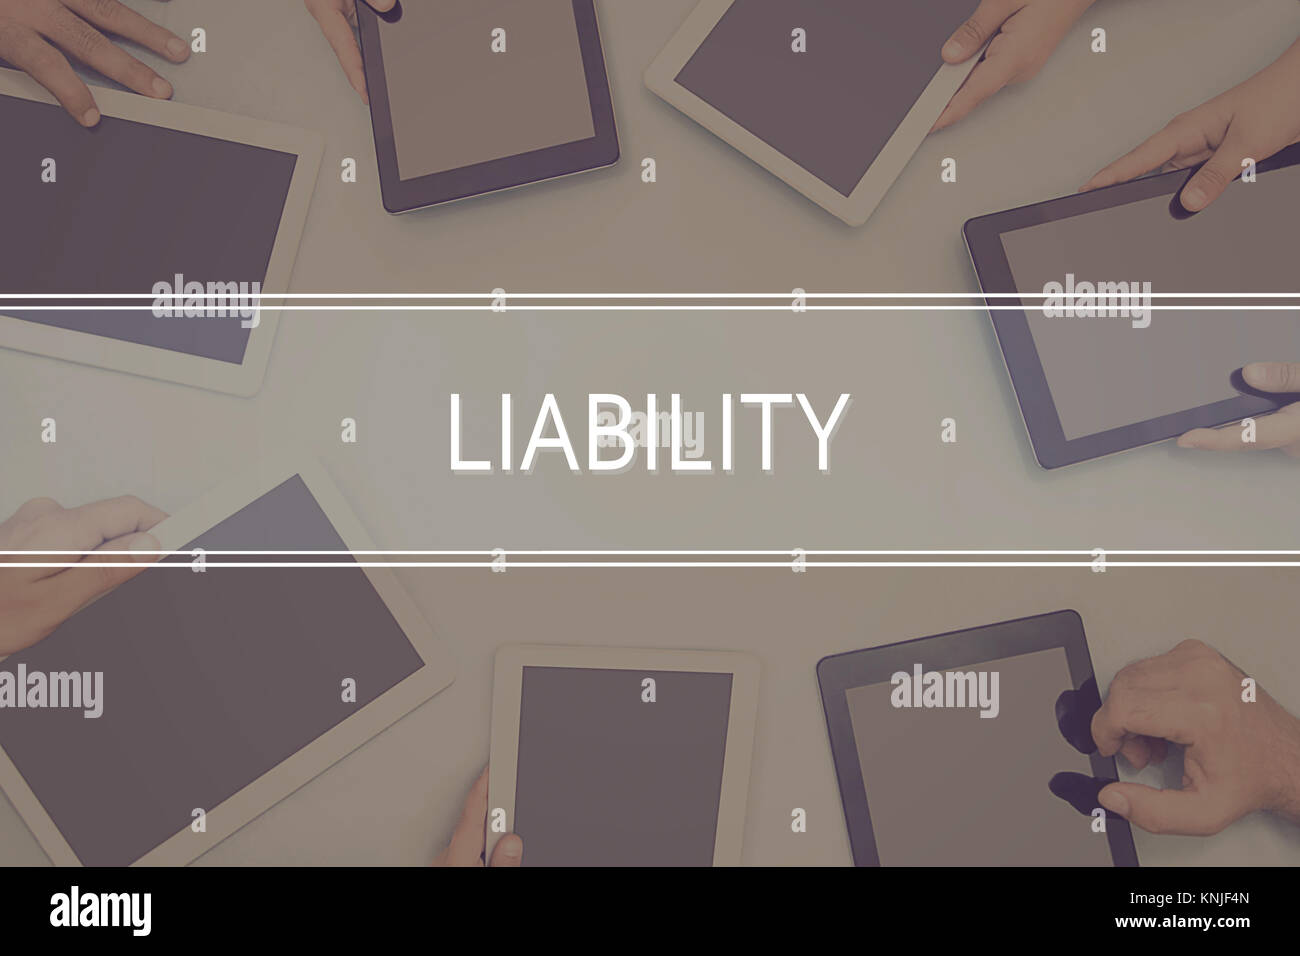 LIABILITY CONCEPT Business Concept. - Stock Image